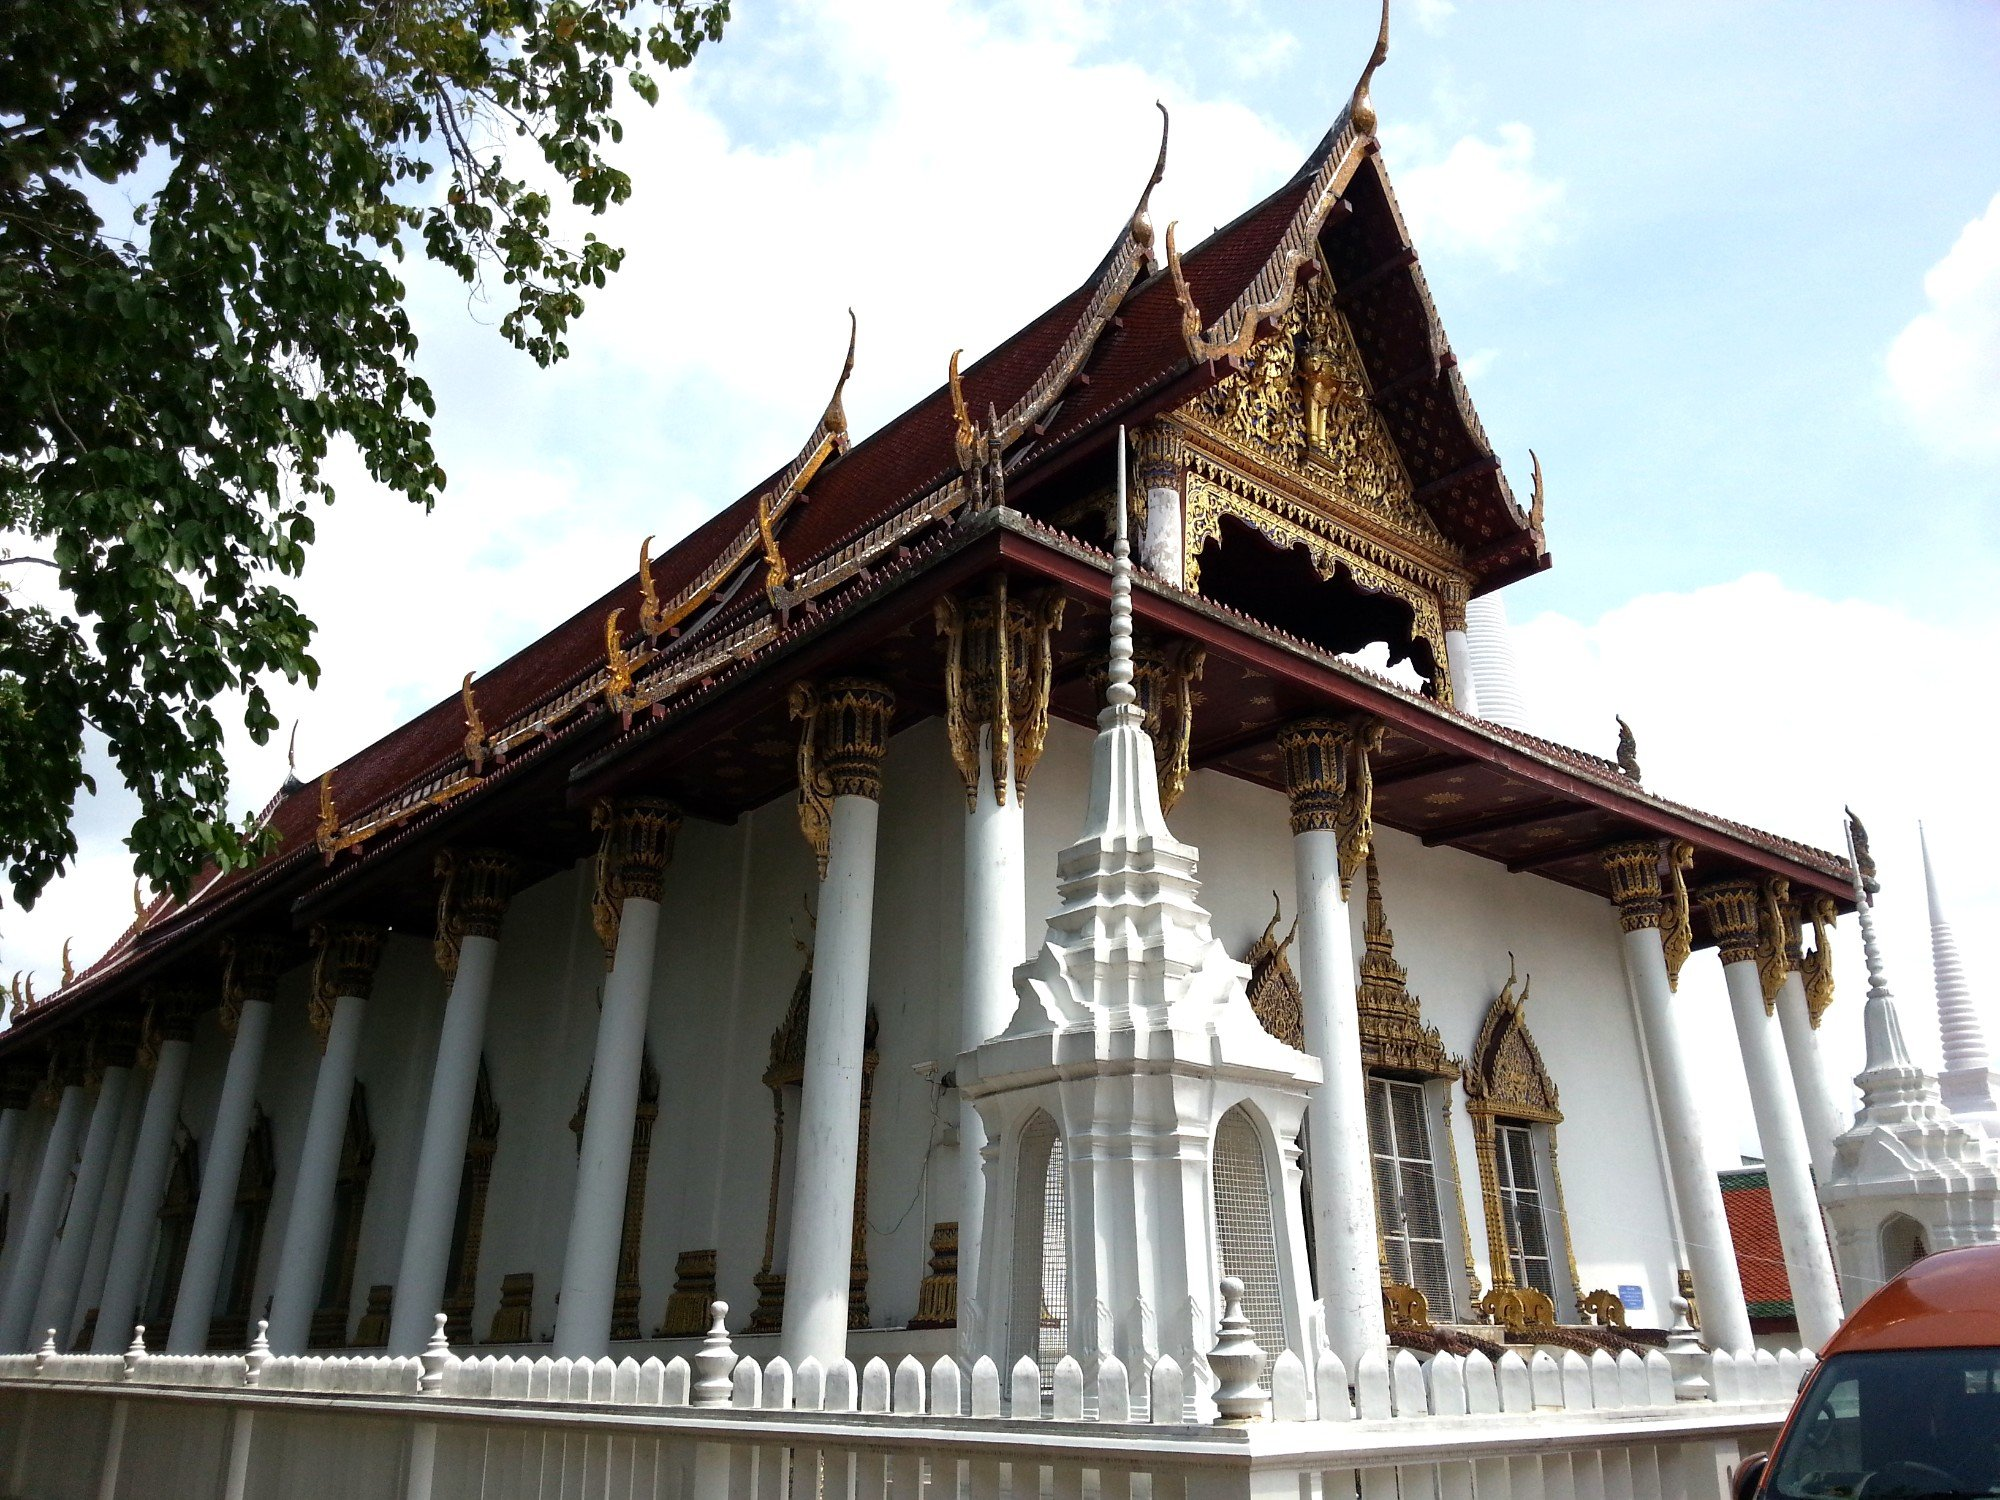 Ordination Hall at Wat Phra Mahathat